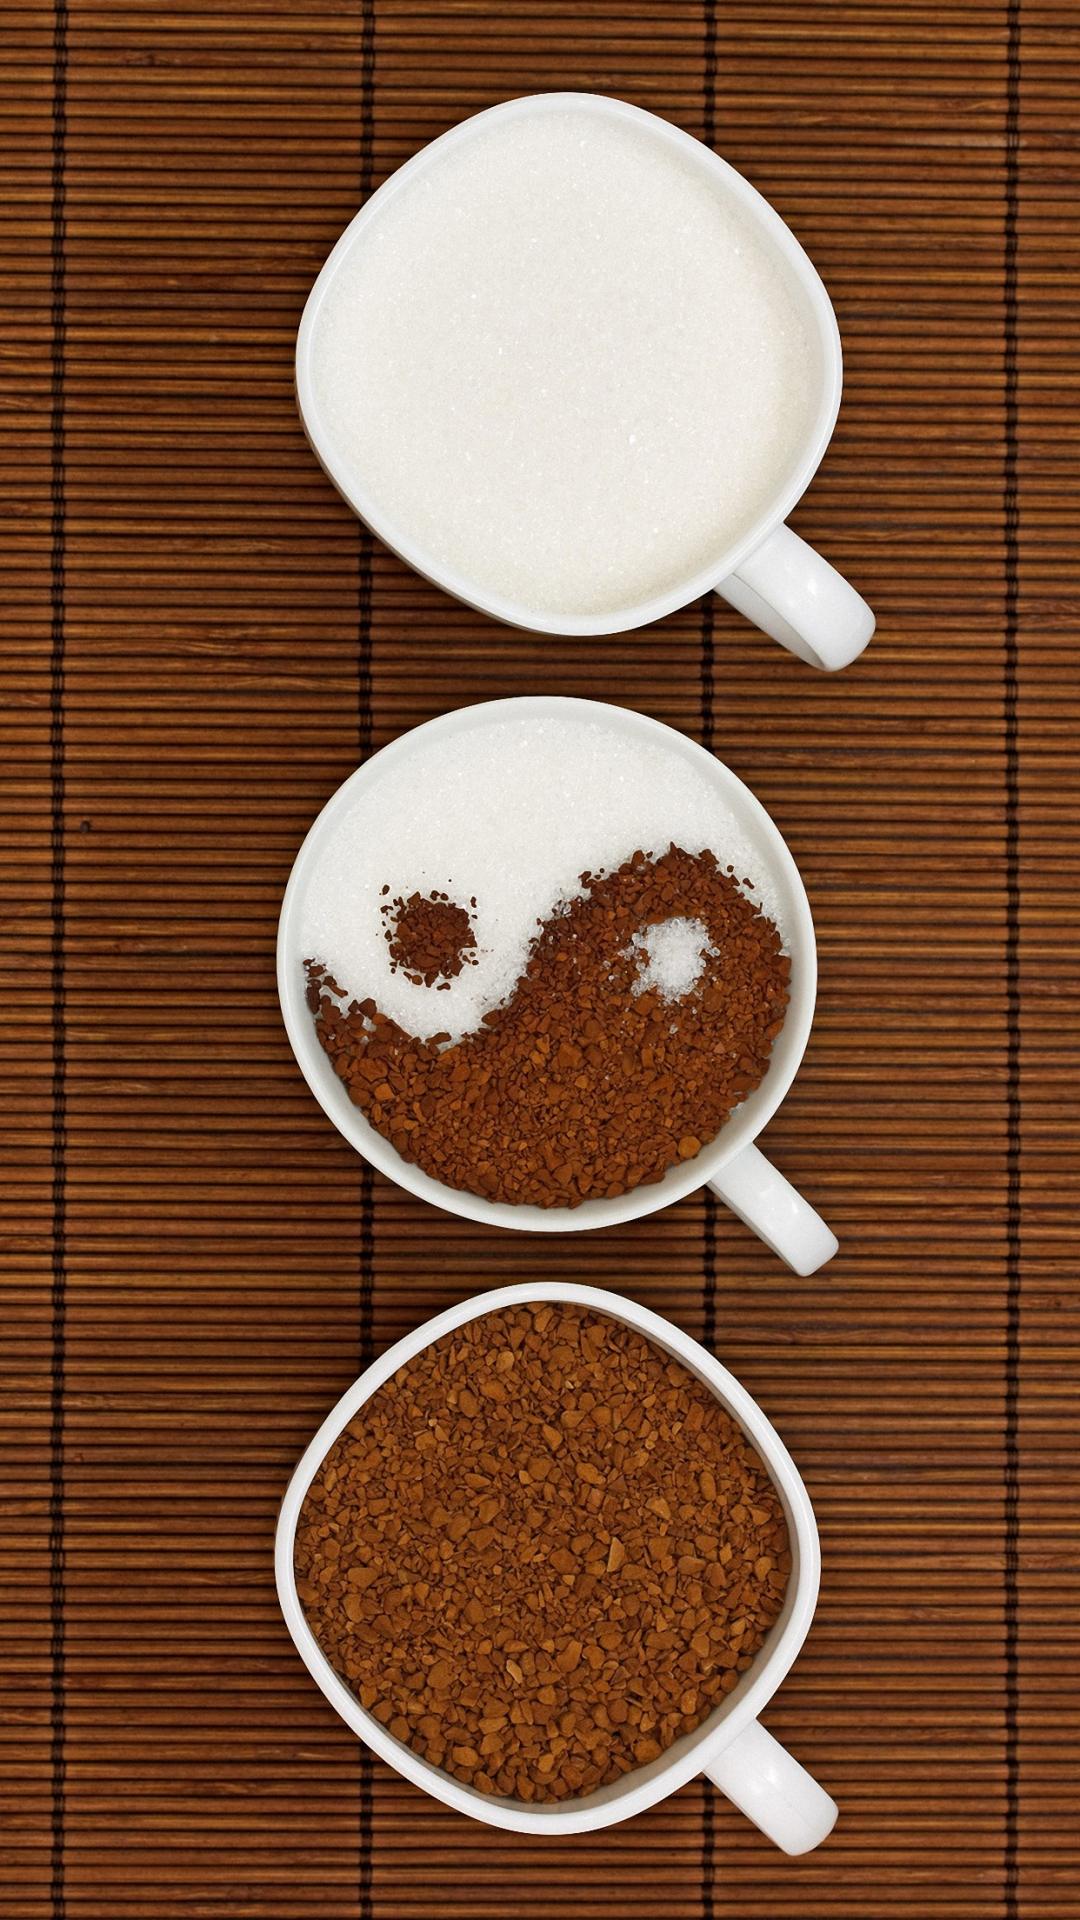 HD-cute-yin-yang-coffee-iPhone-s-Plus-cute-mobile-backgrounds-download-wallpaper-wpc9005884